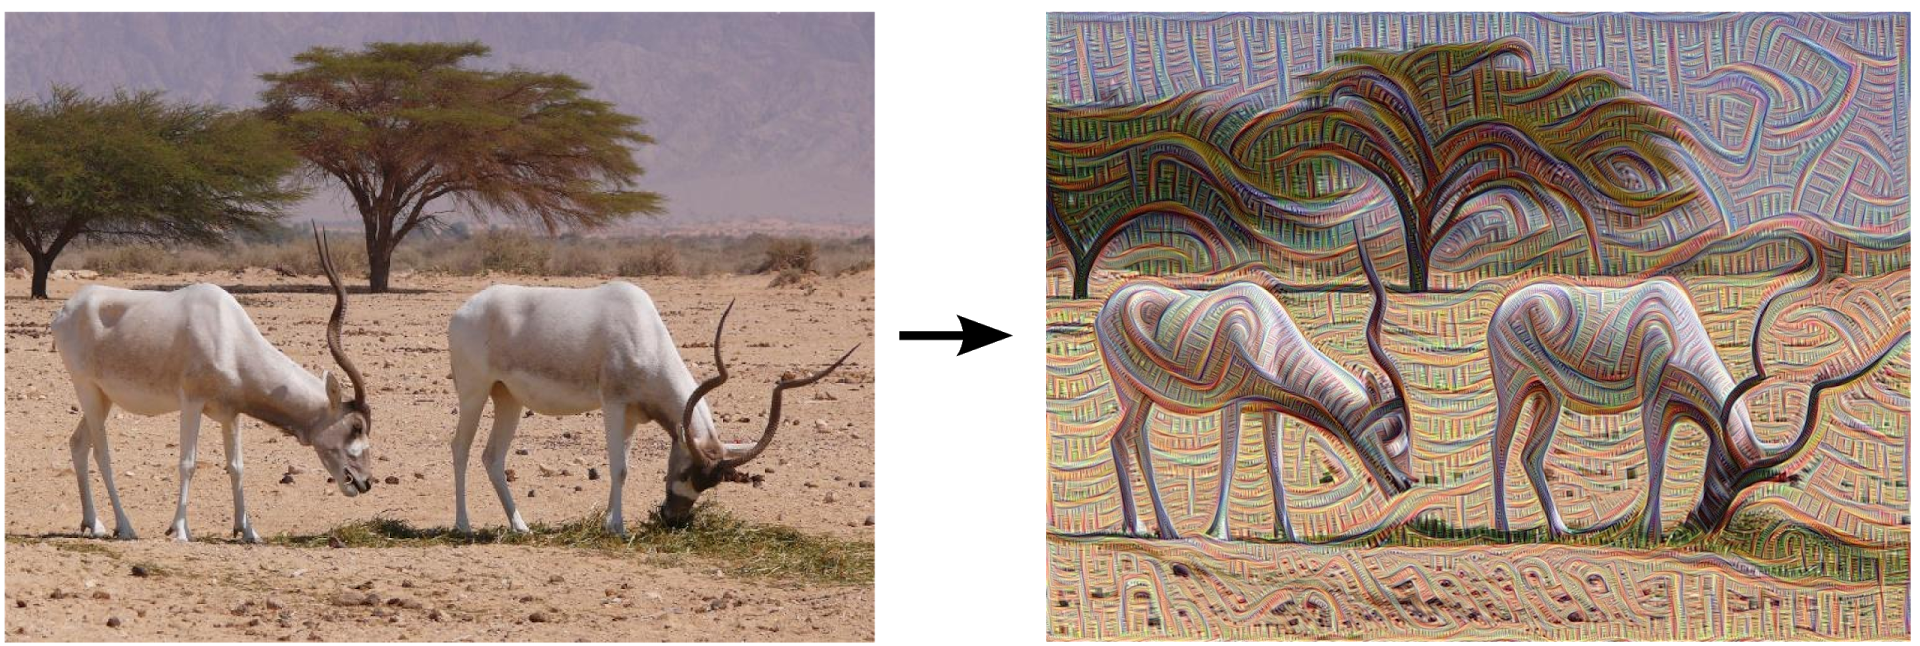 Inceptionism: Going deeper into Neural Networks